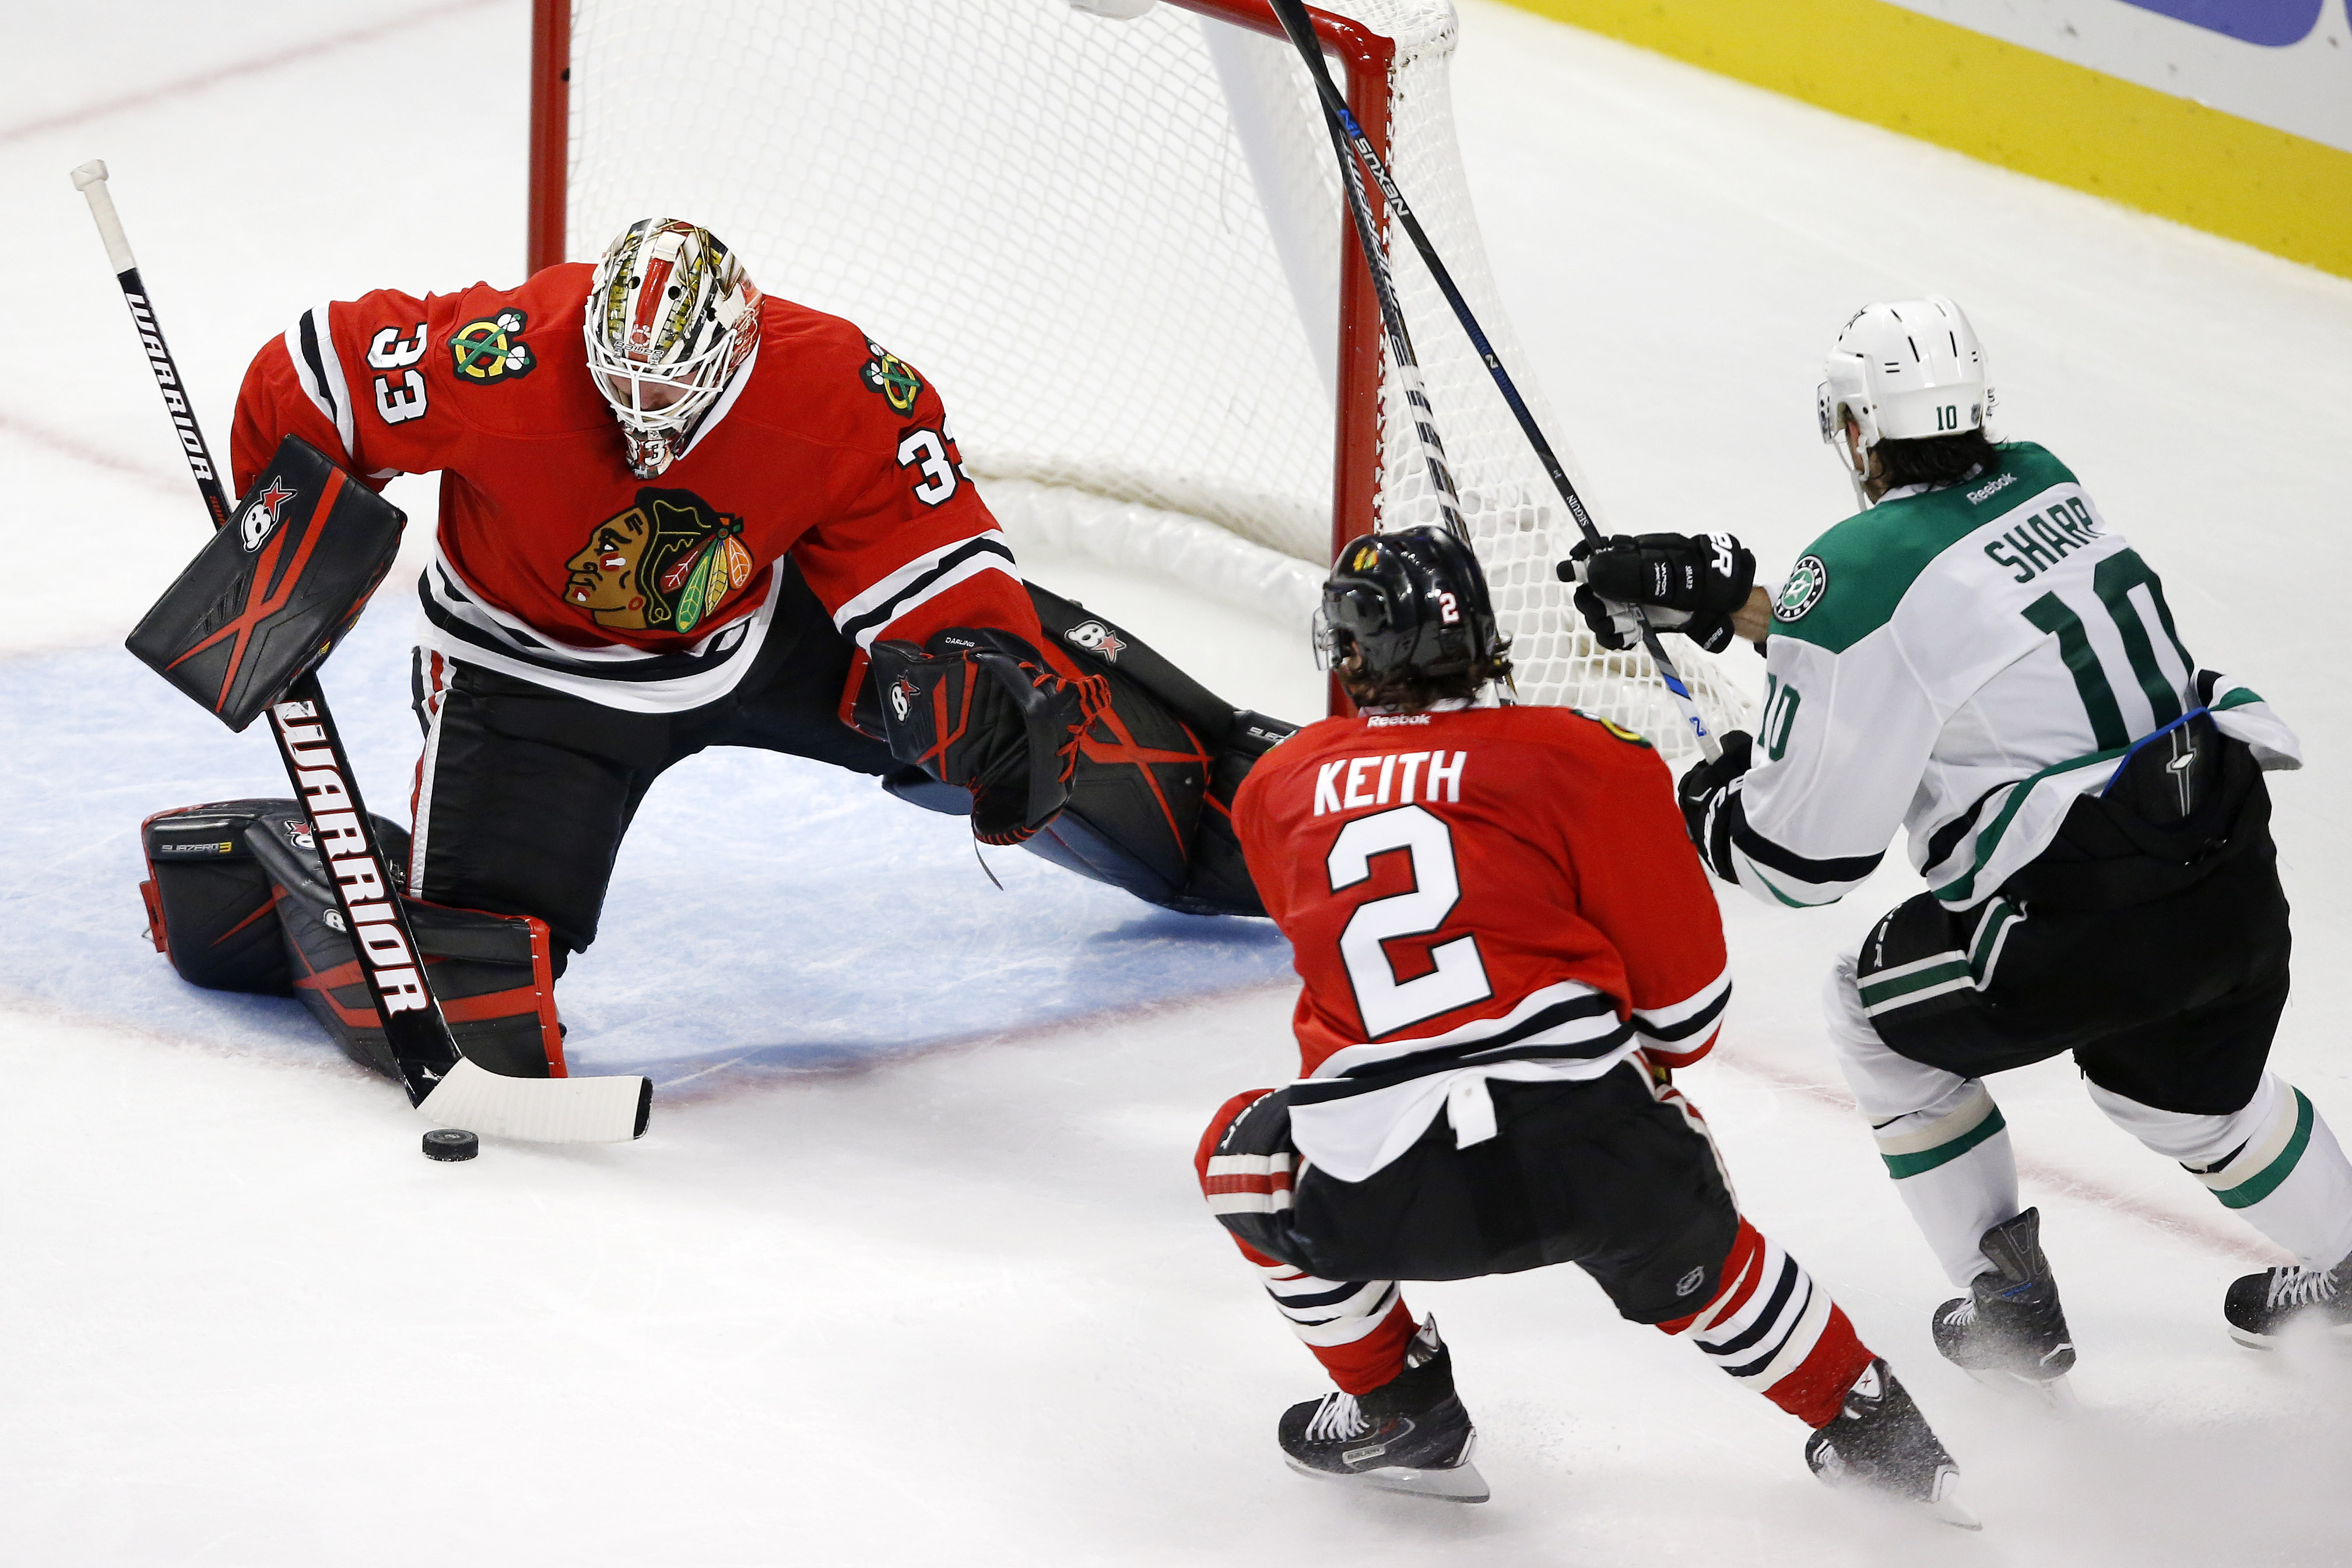 Chicago Blackhawks goalie Scott Darling (33) and defenseman Duncan Keith (2) defend against Dallas Stars right wing Patrick Sharp (10) during the third period of a preseason NHL hockey game Saturday, Oct. 3, 2015, in Chicago. (AP Photo/Andrew A. Nelles)